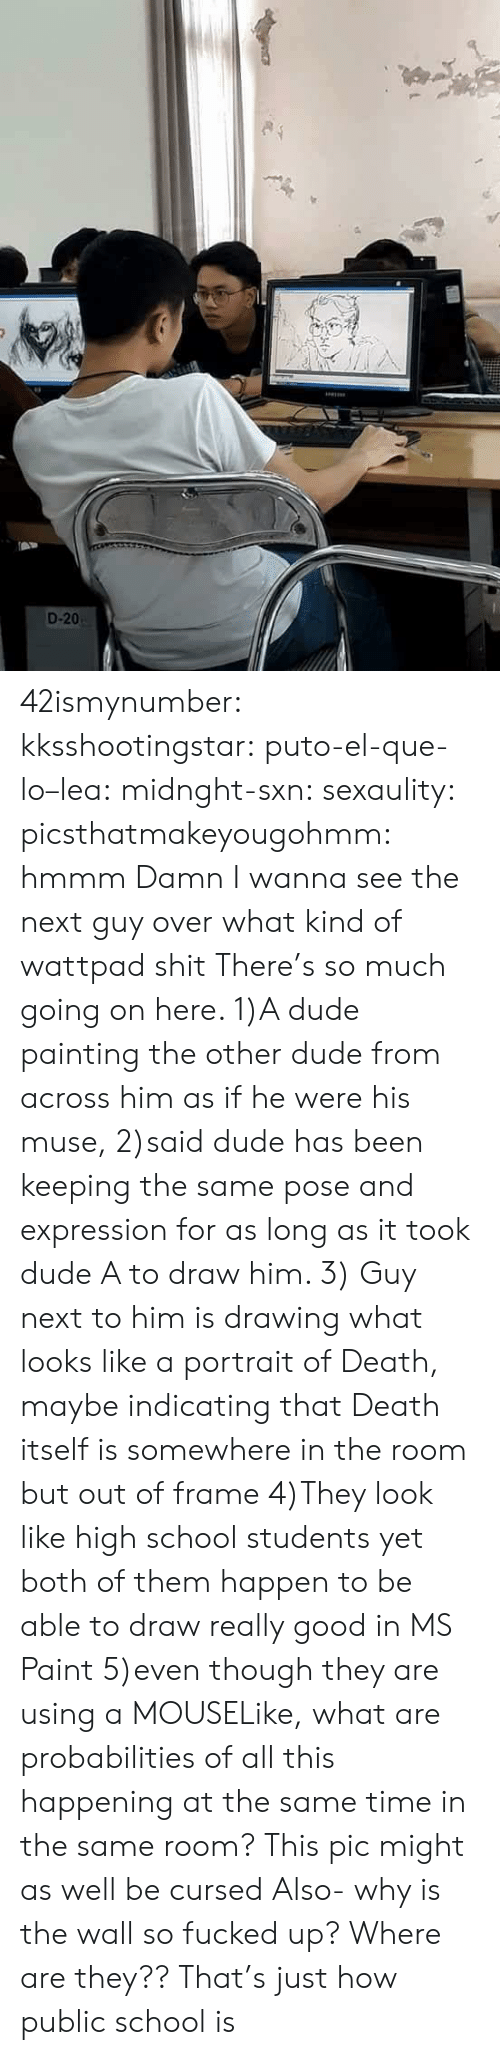 Dude, School, and Tumblr: D-20 42ismynumber: kksshootingstar:  puto-el-que-lo–lea:  midnght-sxn:   sexaulity:  picsthatmakeyougohmm: hmmm  Damn I wanna see the next guy over  what kind of wattpad shit   There's so much going on here. 1)A dude painting the other dude from across him as if he were his muse, 2)said dude has been keeping the same pose and expression for as long as it took dude A to draw him. 3) Guy next to him is drawing what looks like a portrait of Death, maybe indicating that Death itself is somewhere in the room but out of frame 4)They look like high school students yet both of them happen to be able to draw really good in MS Paint 5)even though they are using a MOUSELike, what are probabilities of all this happening at the same time in the same room? This pic might as well be cursed   Also- why is the wall so fucked up? Where are they??   That's just how public school is